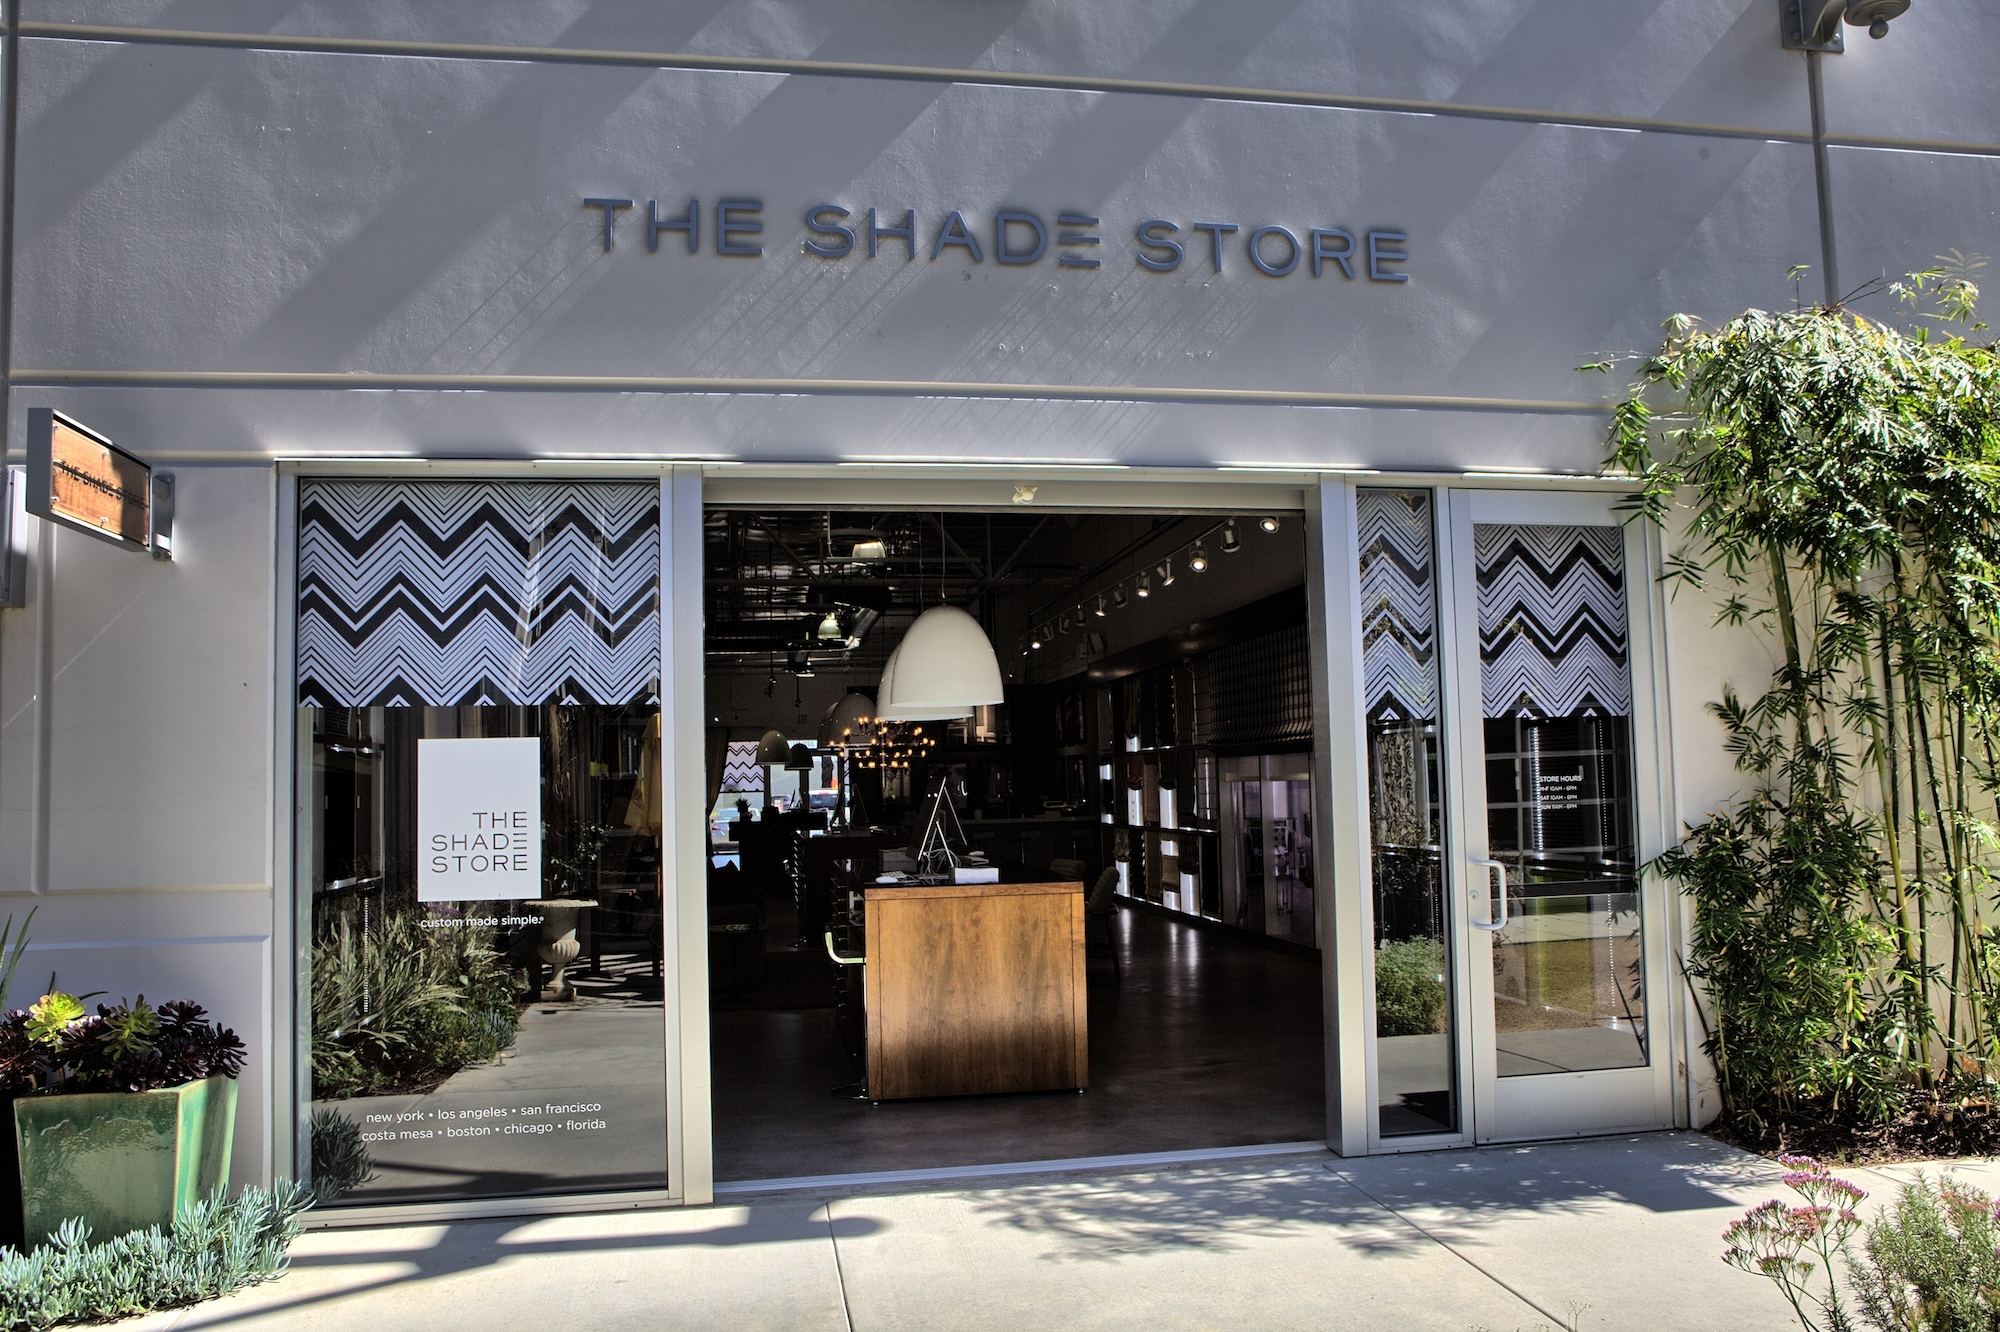 The Shade Store Promo Code & Deals is a great store to go to get quality supplies for you from Home & Garden. Want to save money on The Shade Store Promo Code & Deals itmes? Here are many The Shade Store Promo Code & Deals coupons and promo codes for and get one The Shade Store Promo Code & Deals coupons.